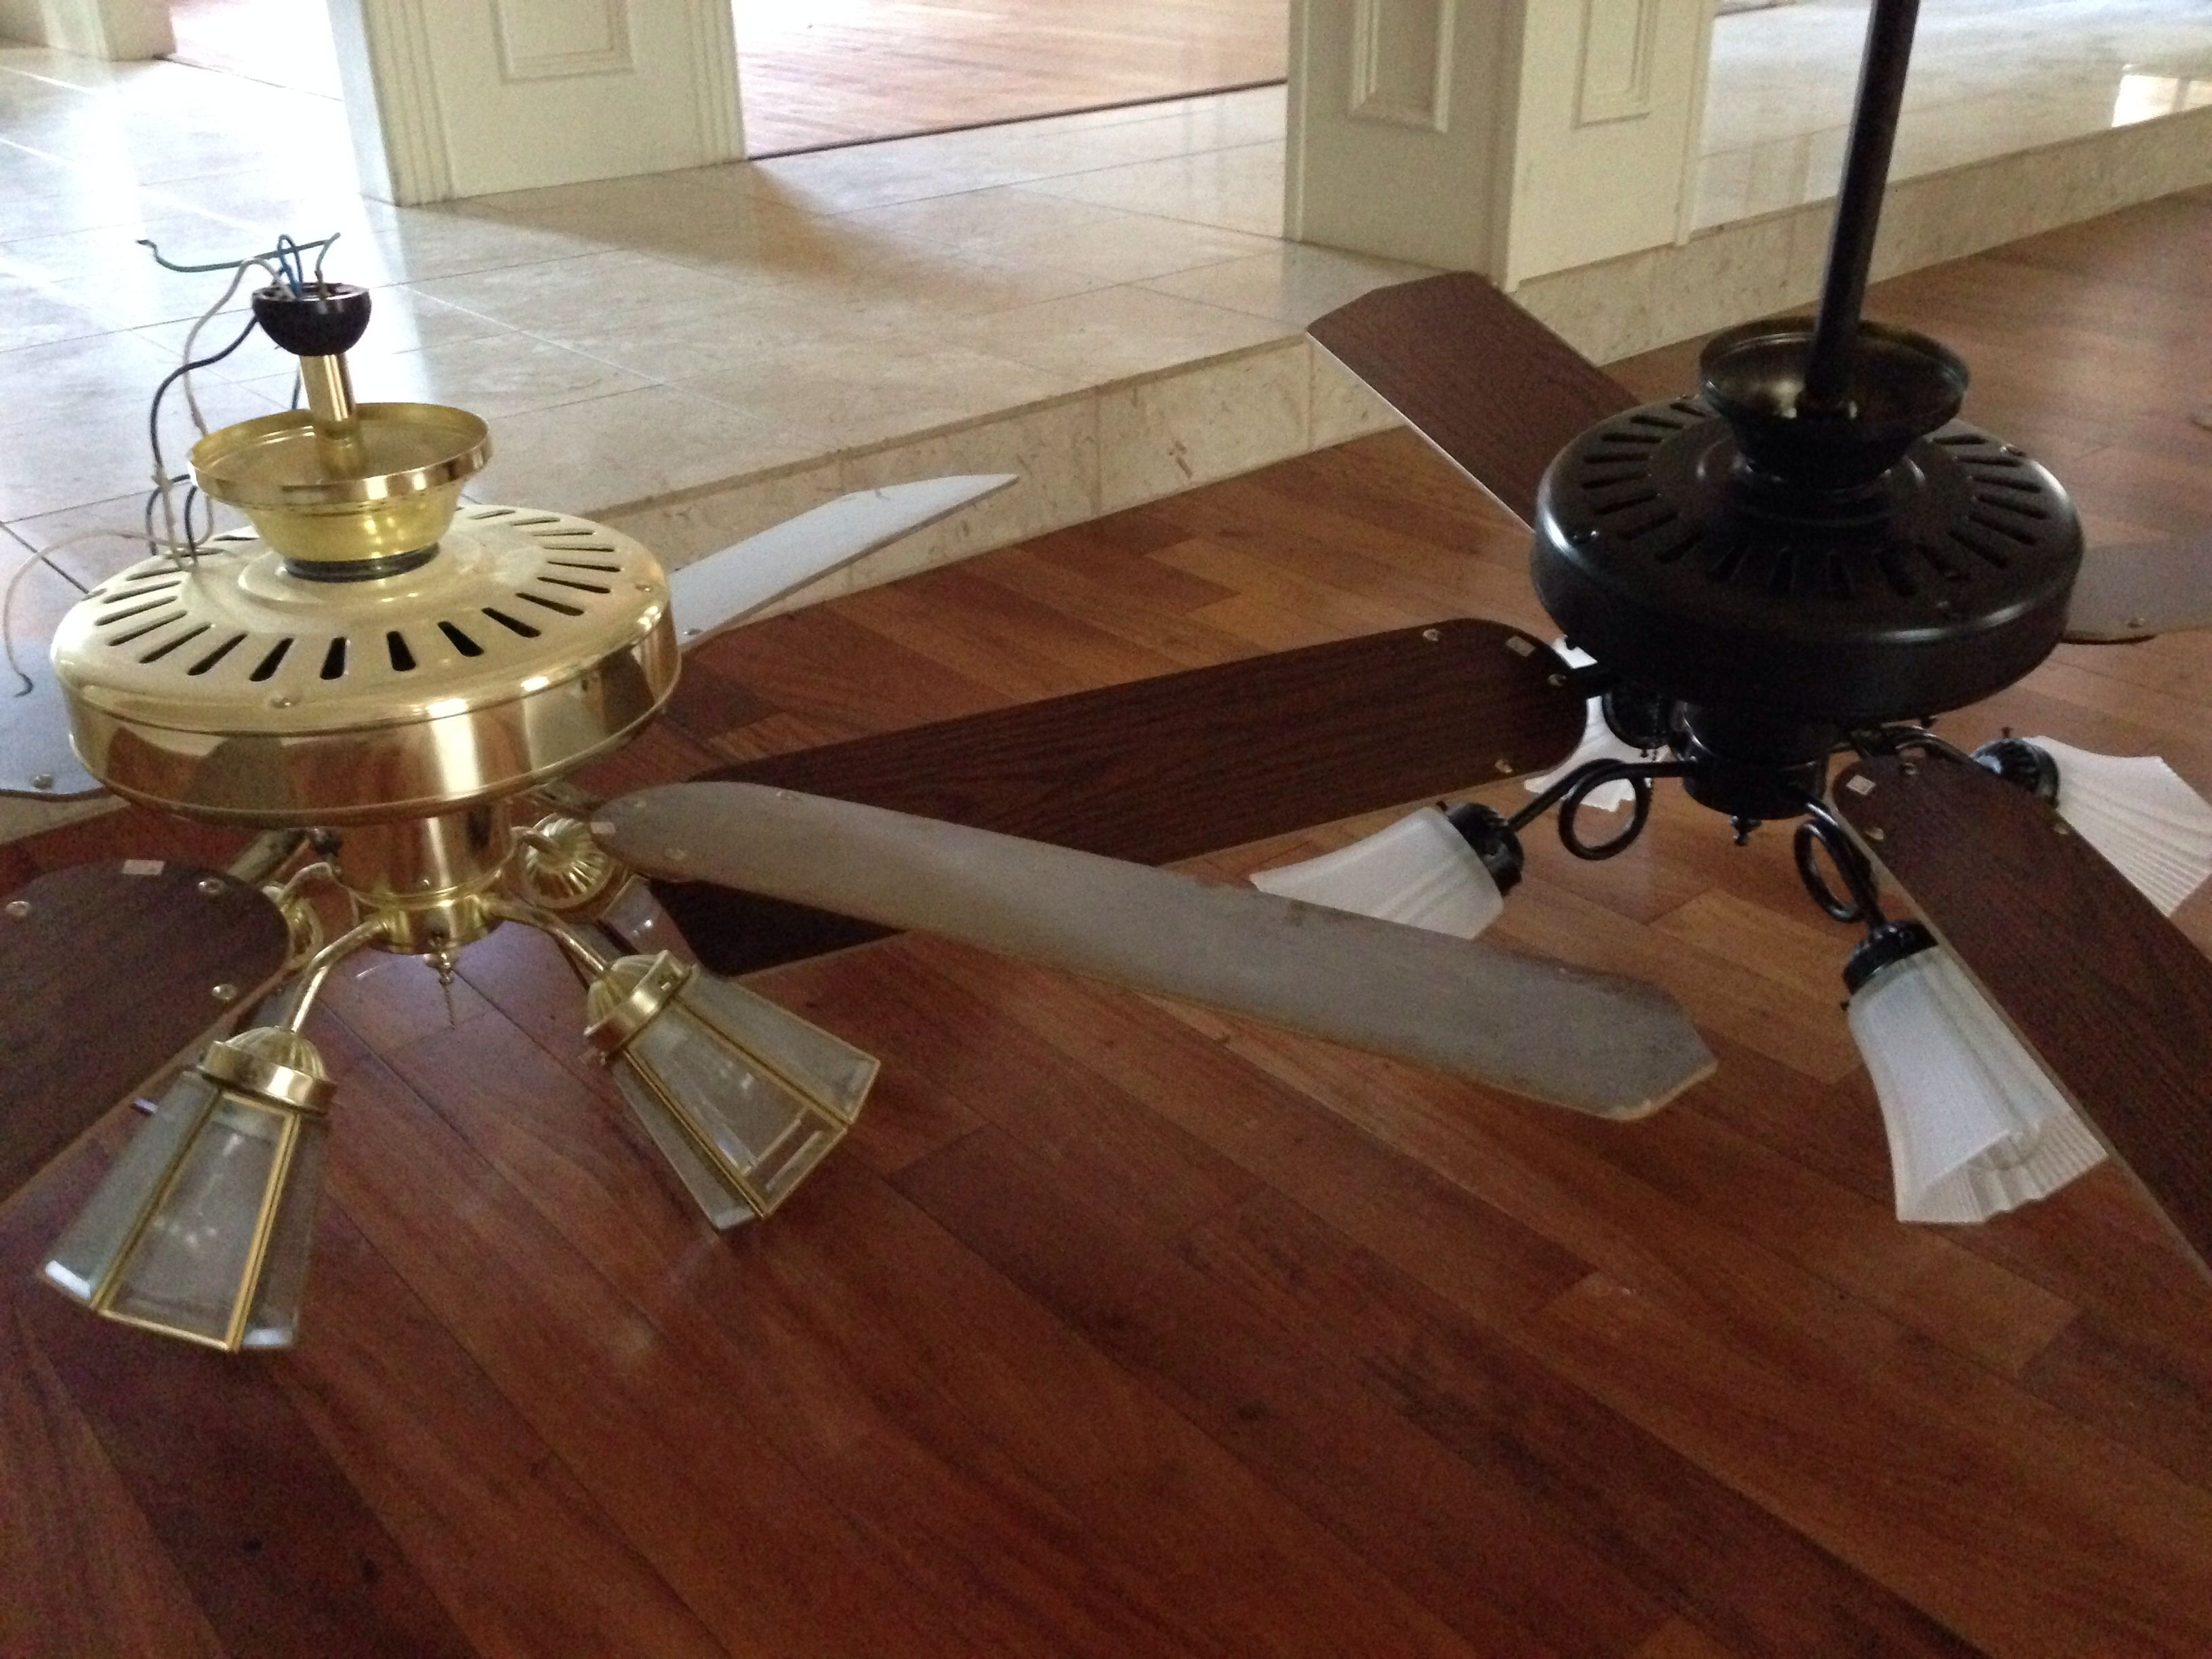 Rust Oleum Oil Rubbed Bronze Spray Paint Goodbye Br Ceiling Fan